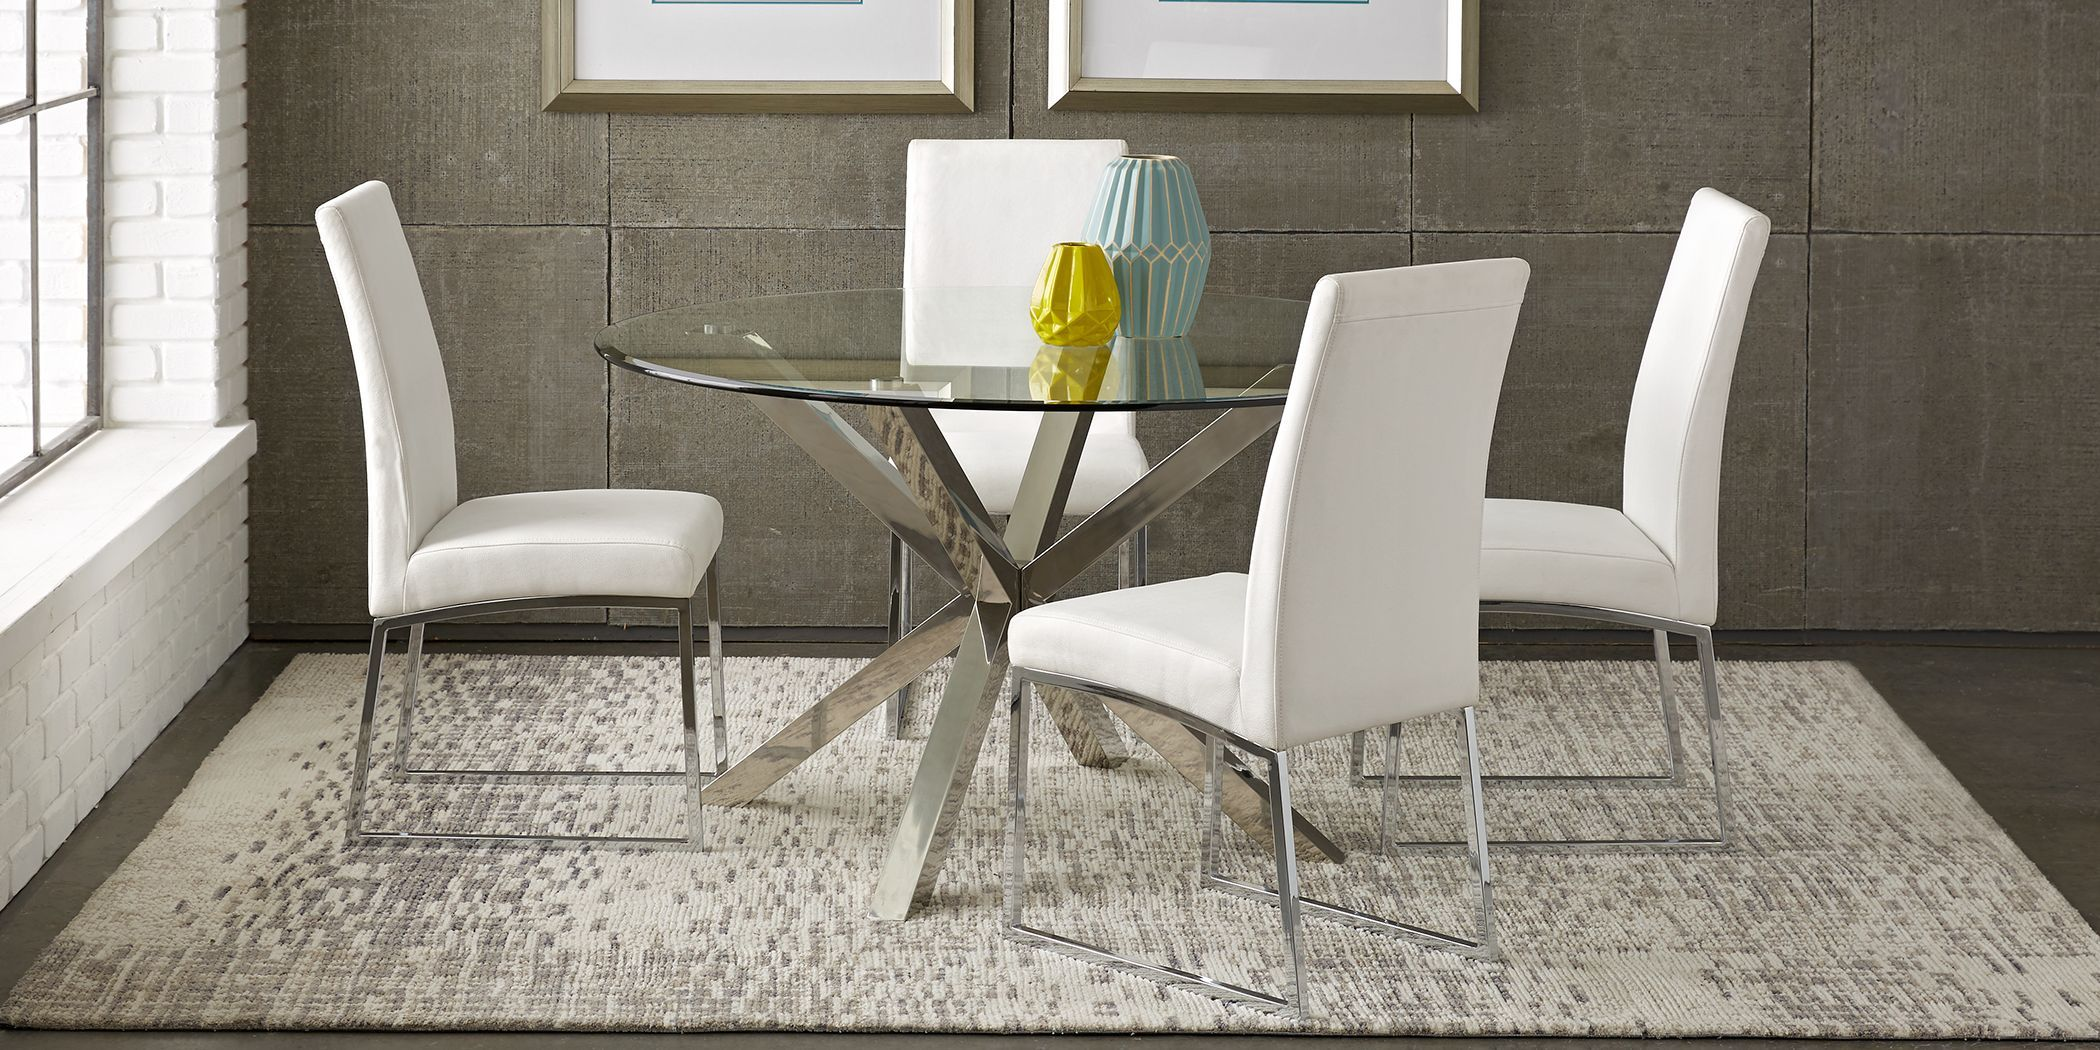 Jules Gray 5 Pc Dining Set With Off White Chairs In 2021 Metal Dining Room Dining Room Furniture Sets Dining Room Sets